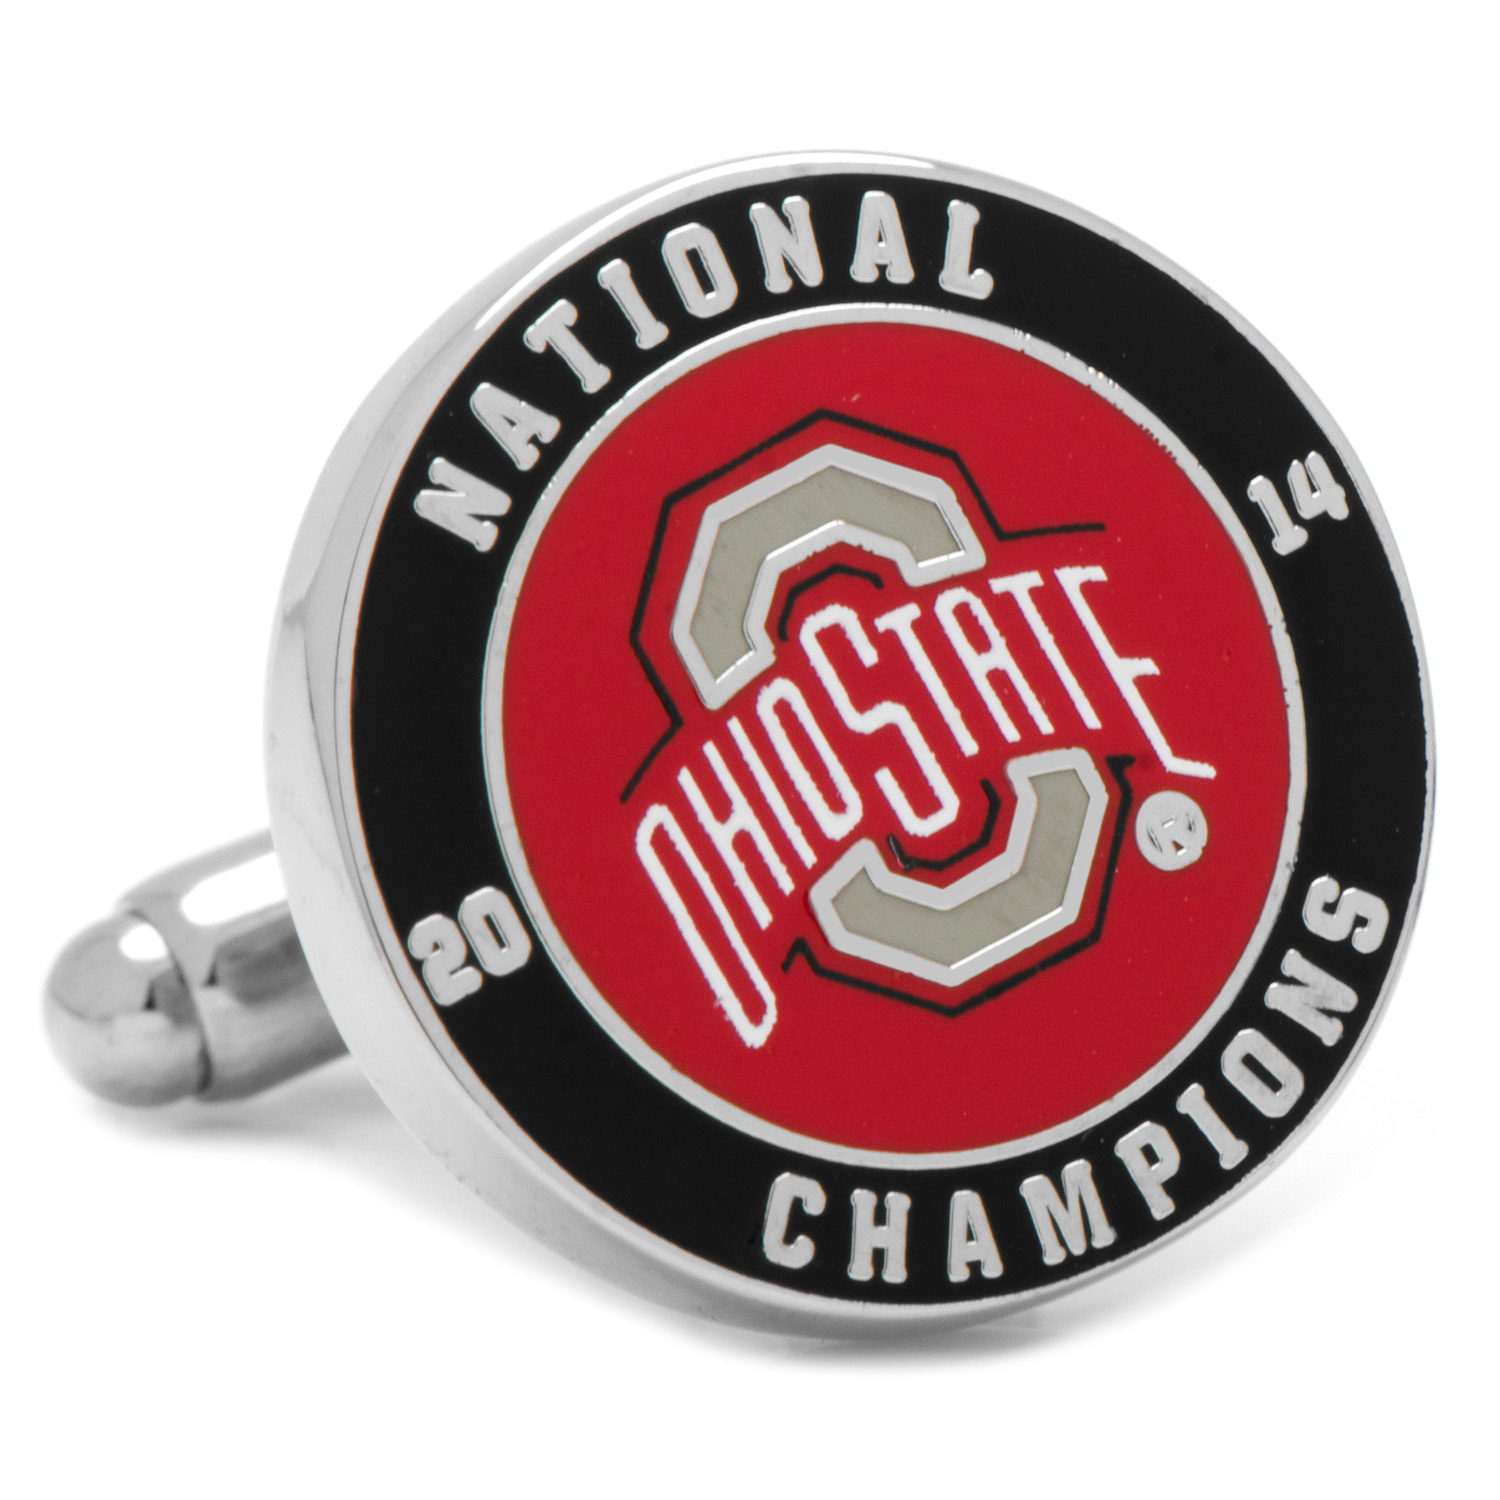 2014 Ohio State Buckeyes National Champions Cufflinks